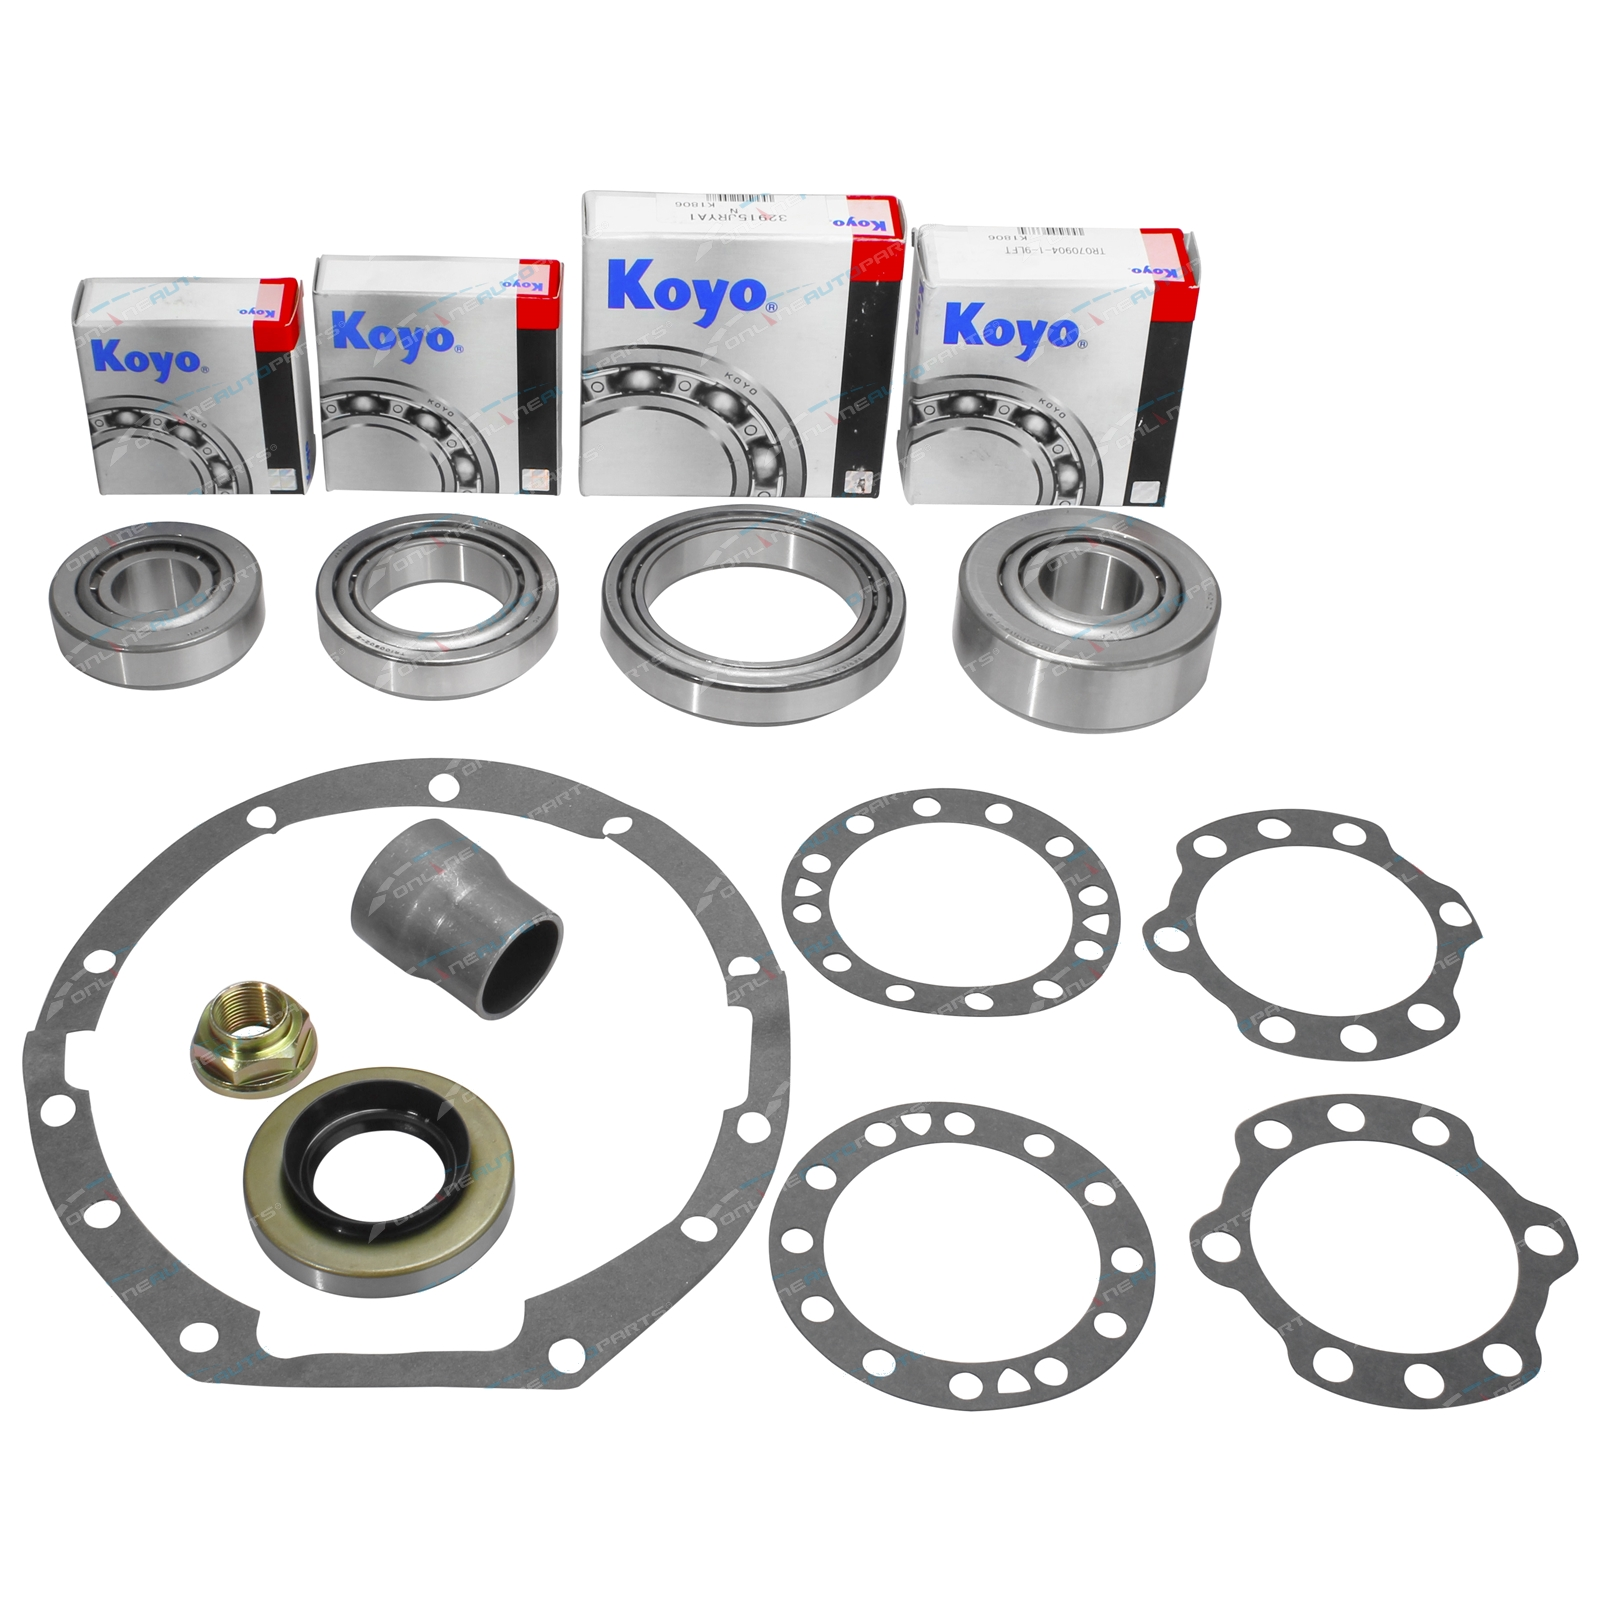 Front Diff Kit suits Toyota Landcruiser 80 Series w Diff Lock